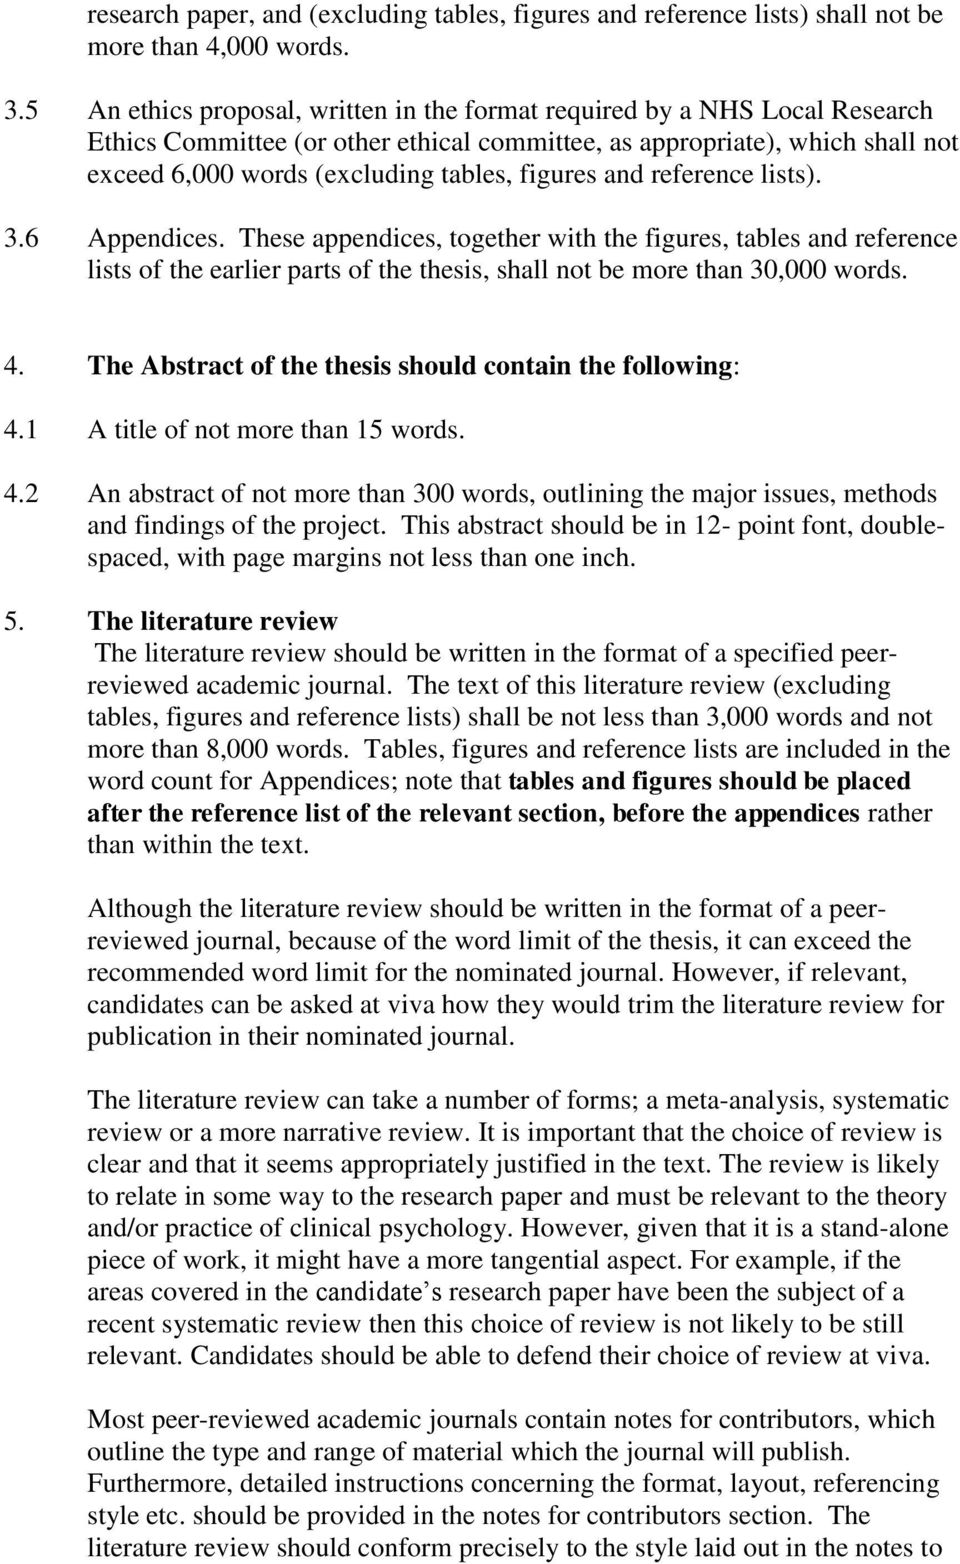 figures and reference lists). 3.6 Appendices. These appendices, together with the figures, tables and reference lists of the earlier parts of the thesis, shall not be more than 30,000 words. 4.